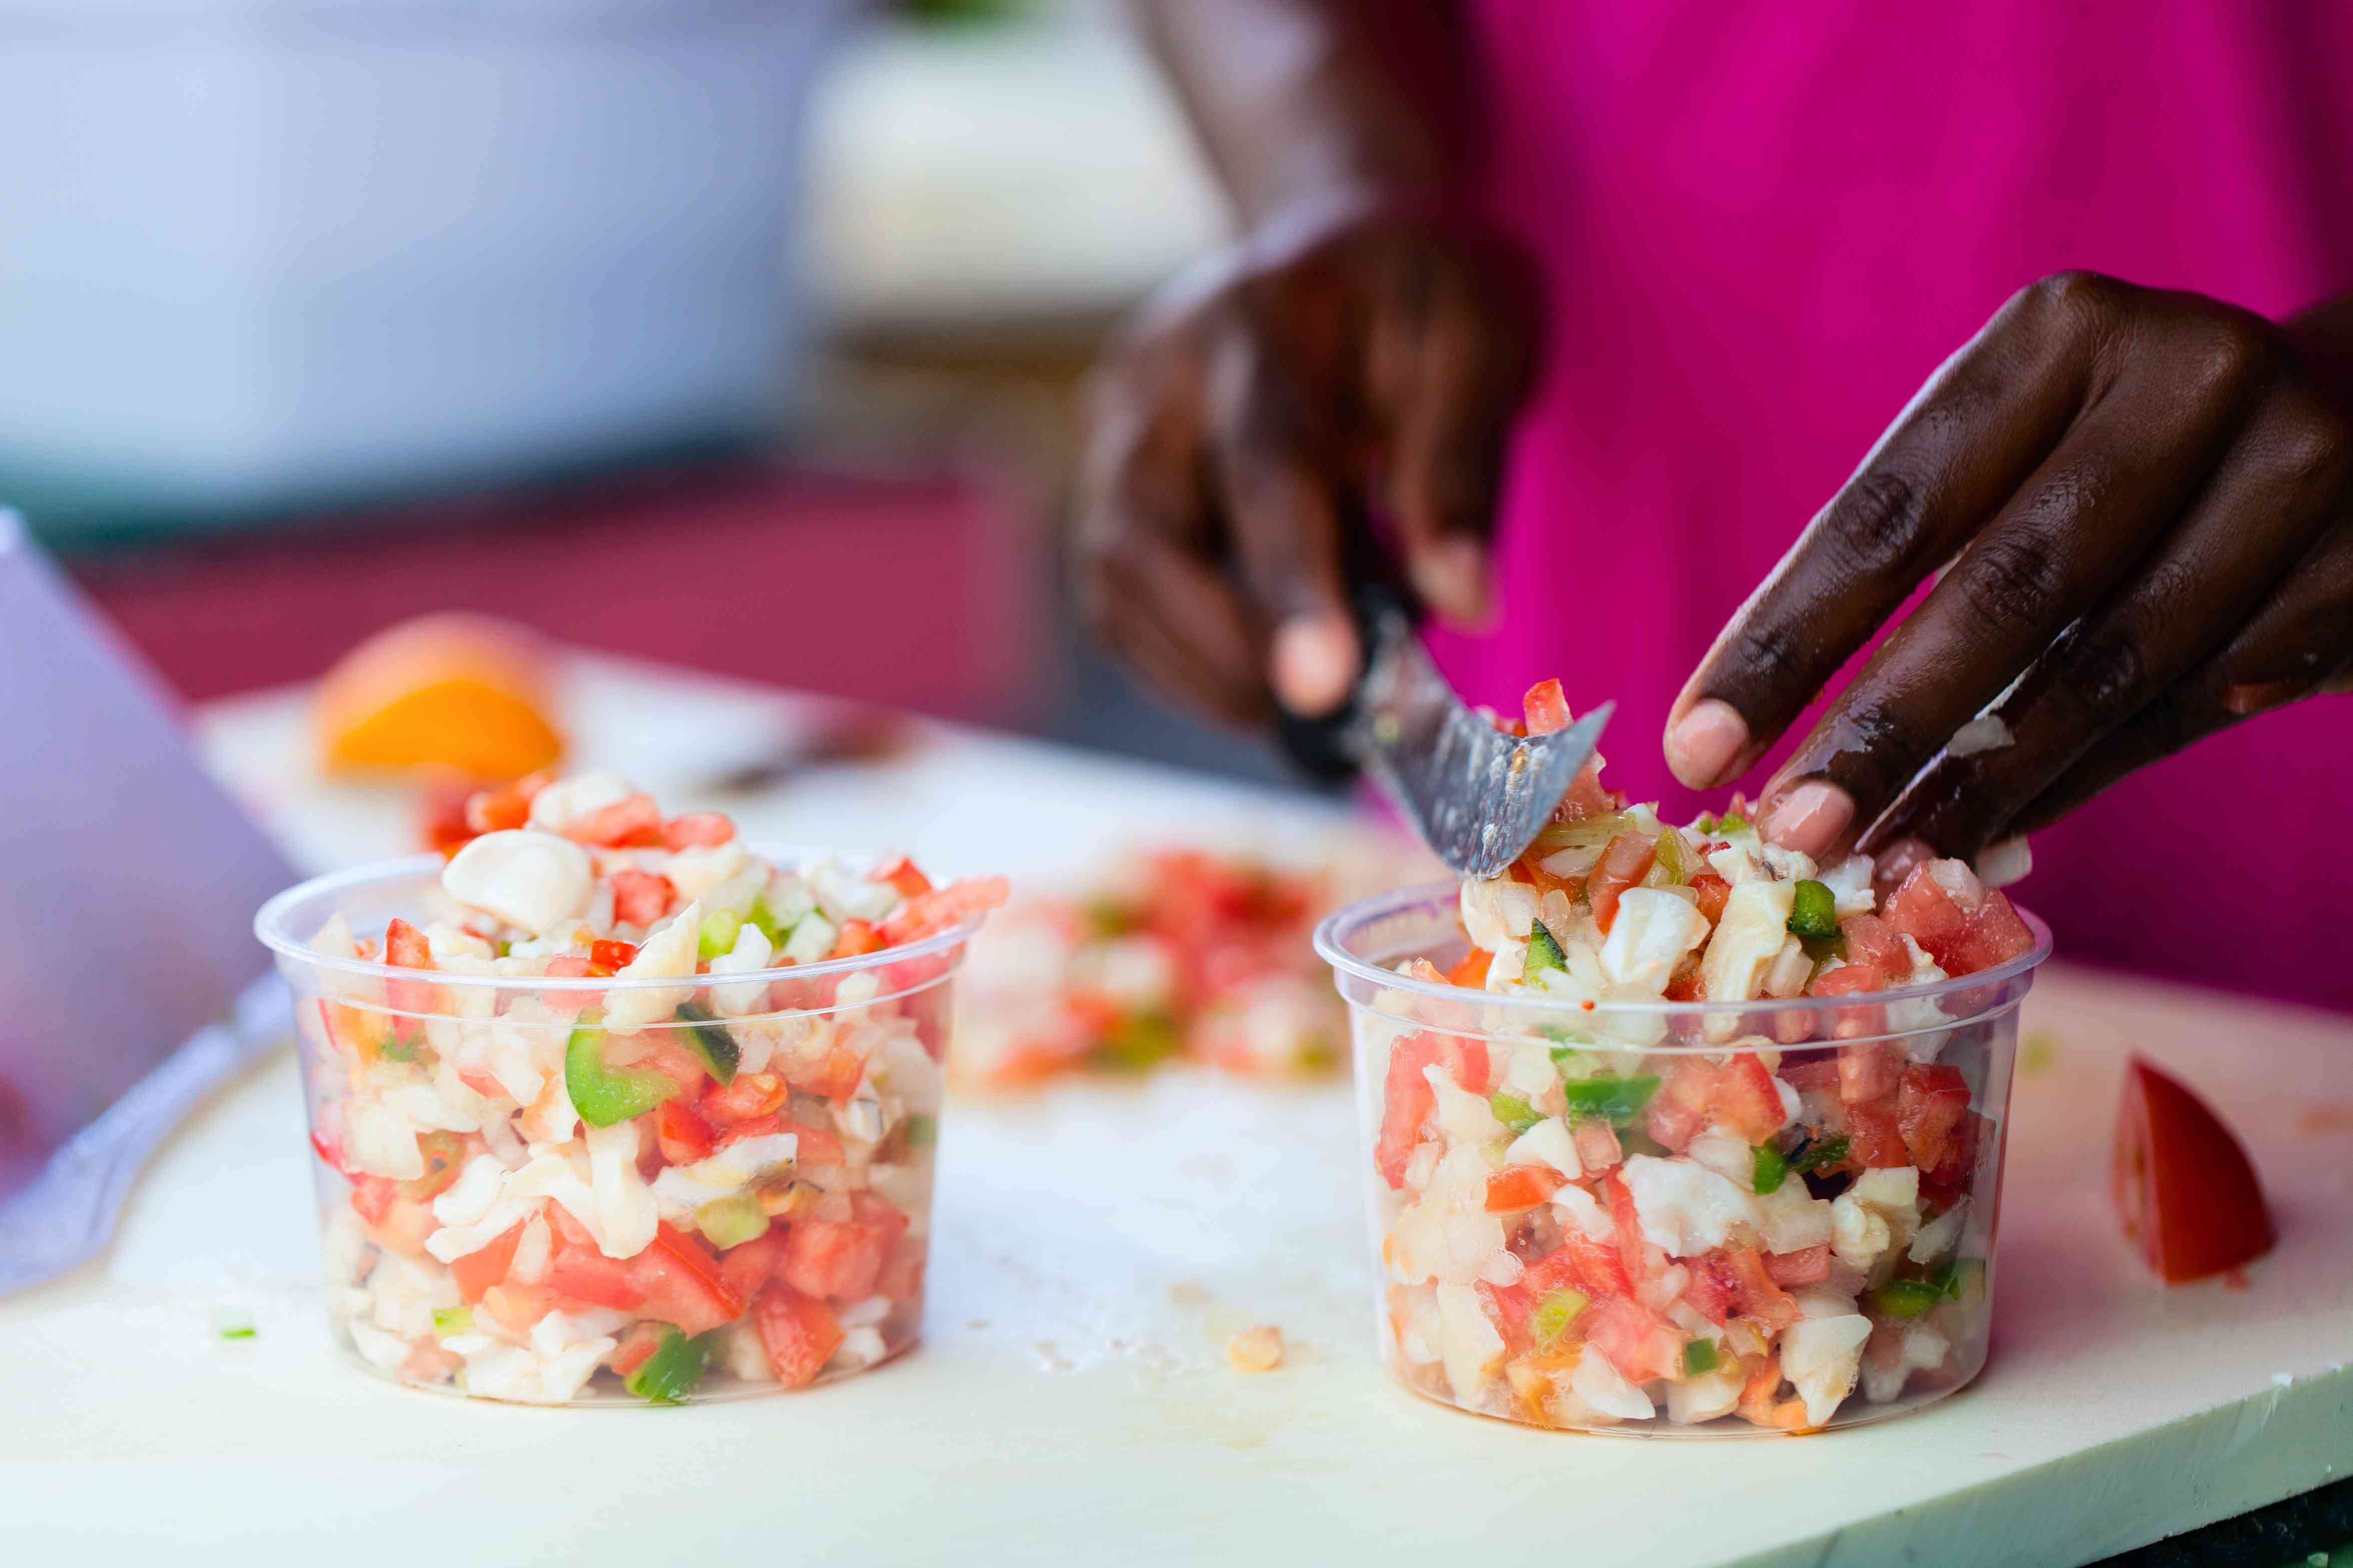 Bahamian conch salad being prepared